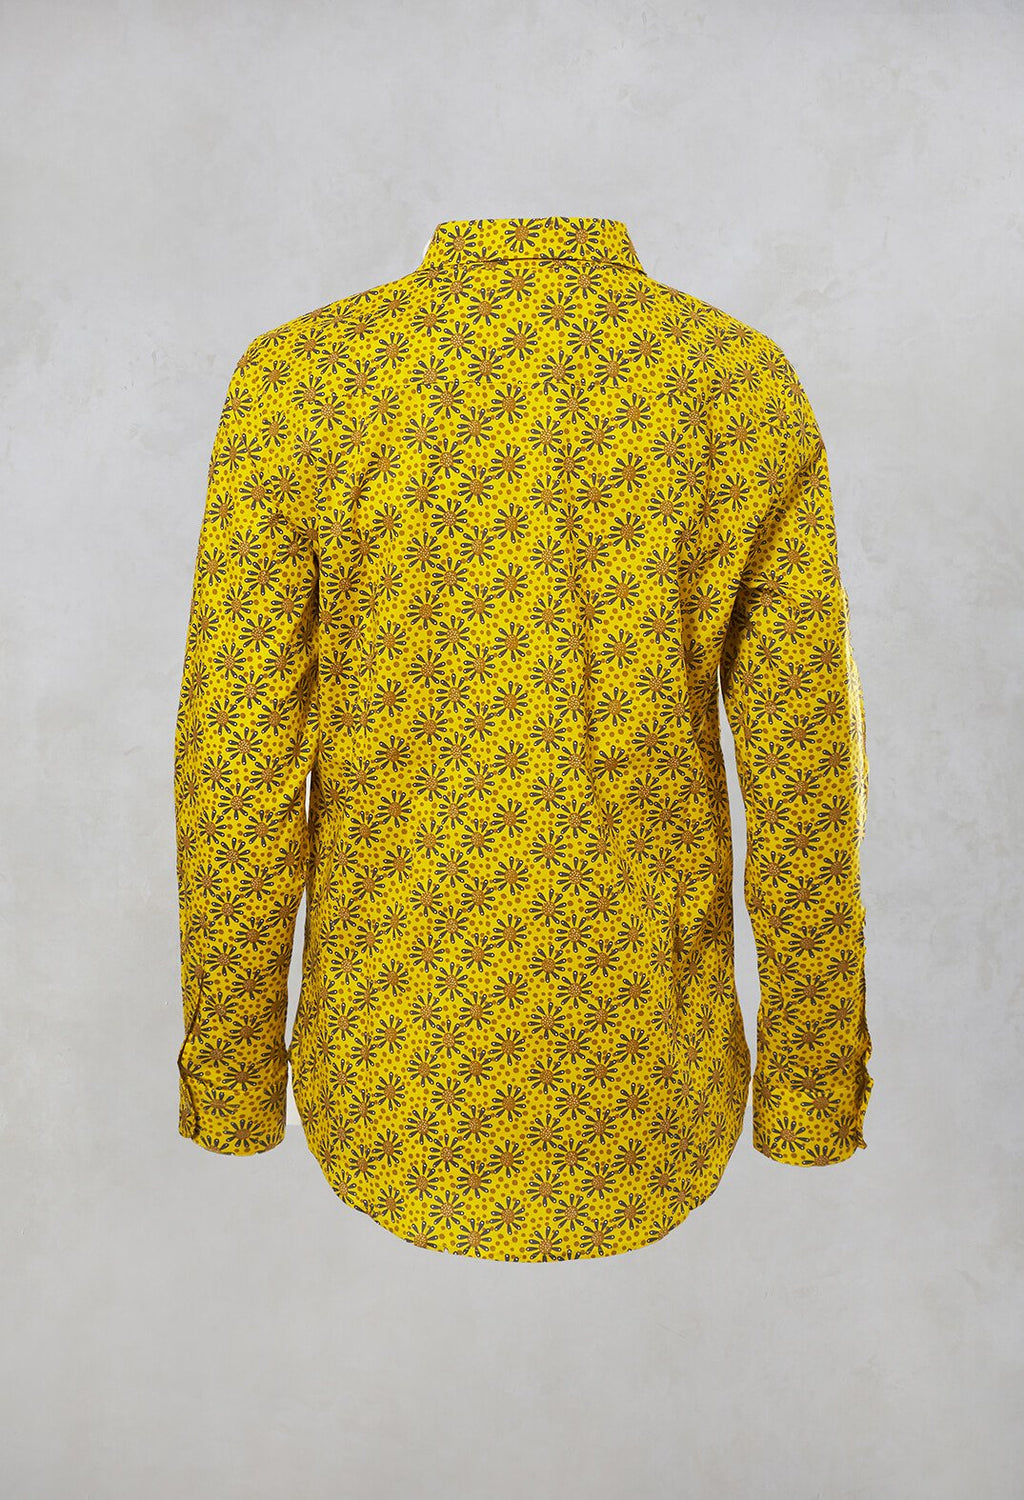 Shirt in Lemon